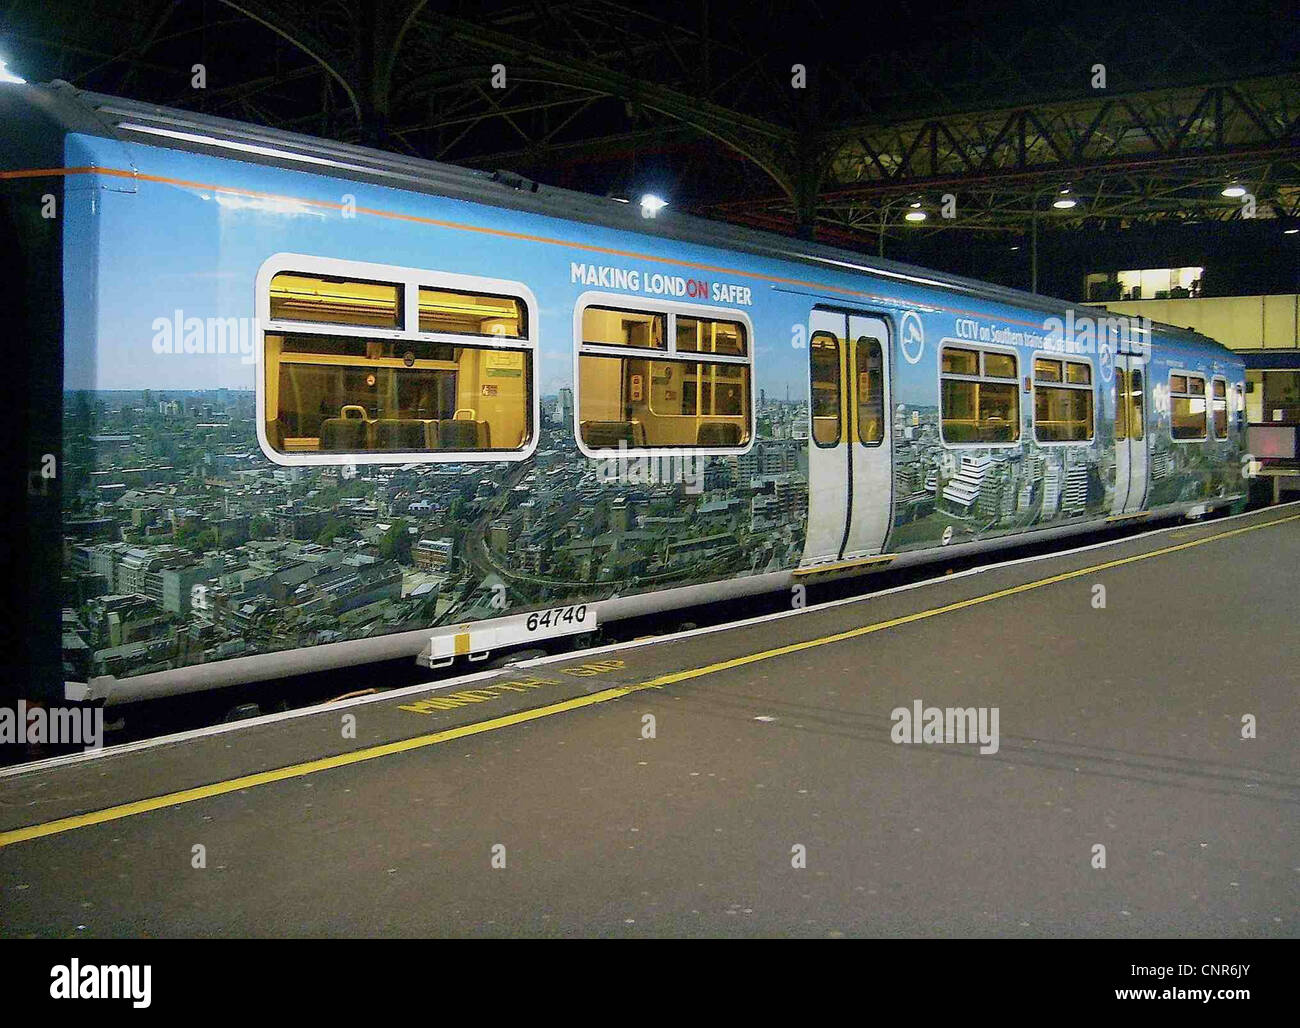 Southern/TfL CCTV advertising livery as shown on the DMSO vehicle from Southern Metro Class 456 EMU No. 456006} - Stock Image